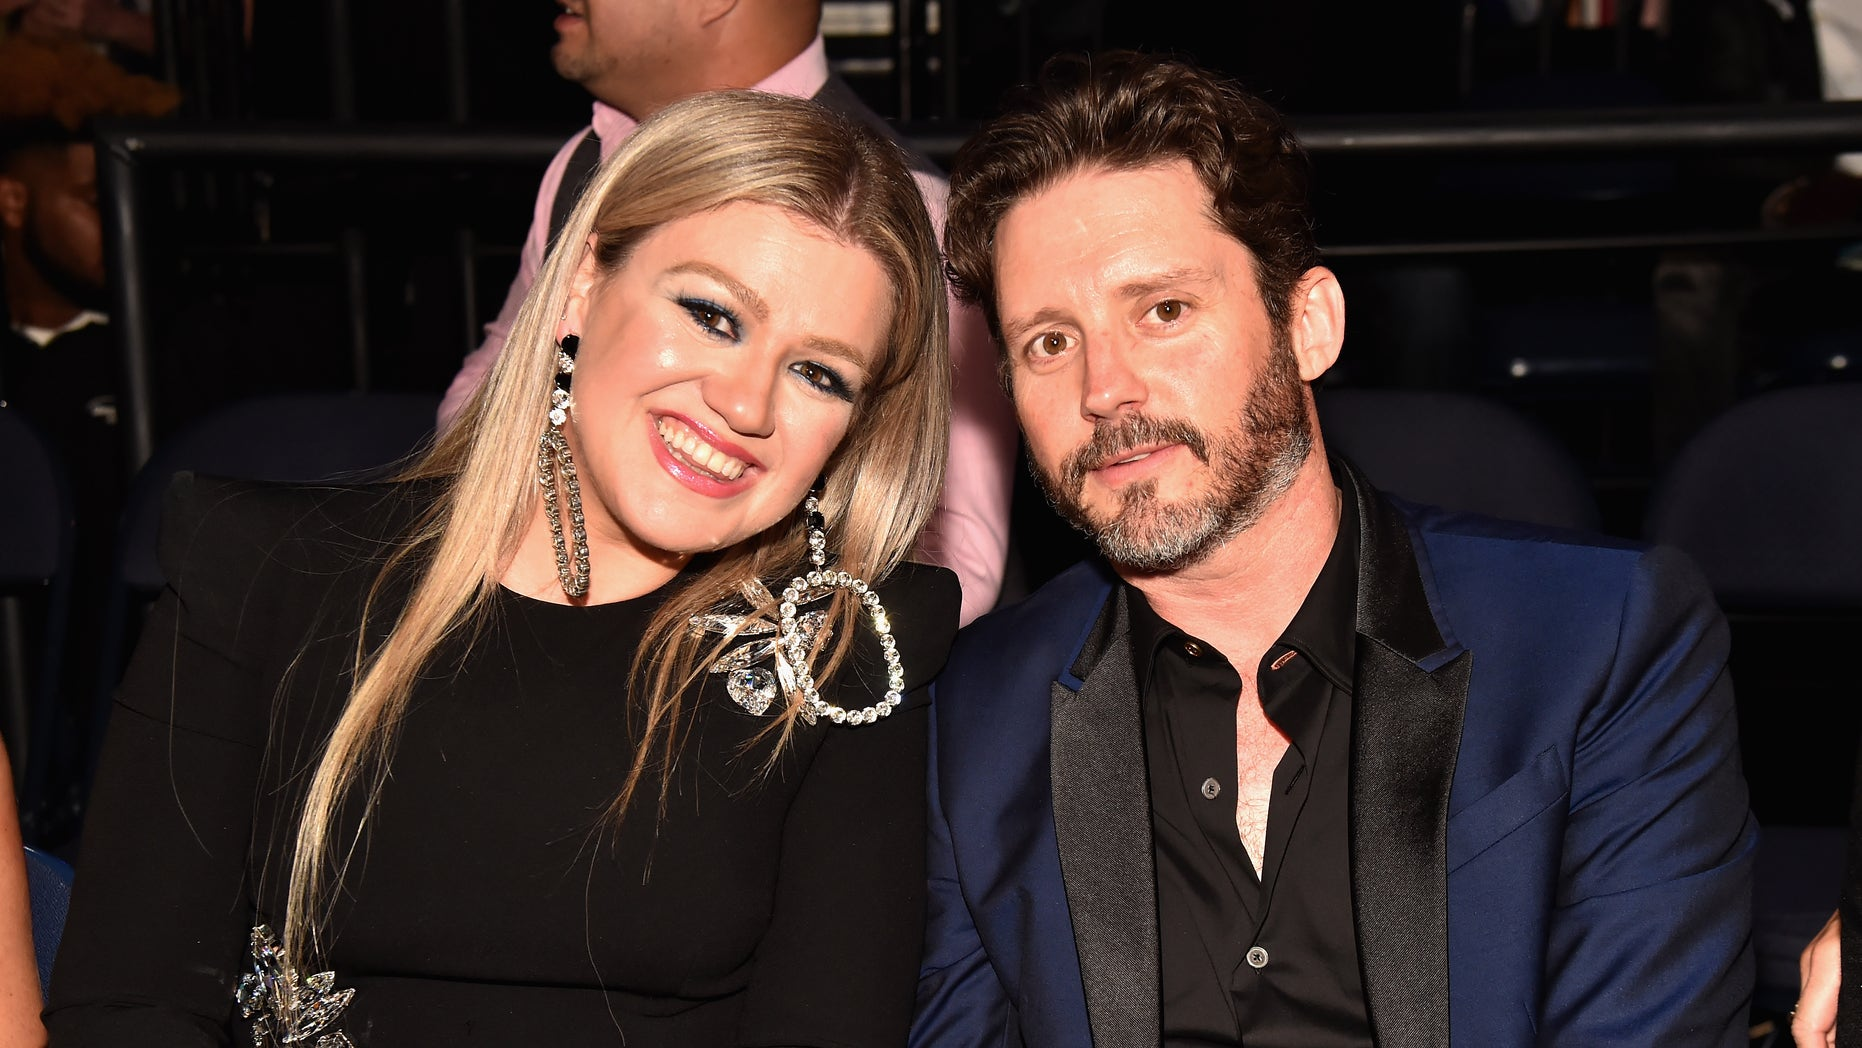 Kelly Clarkson and Brandon Blackstock appeared on stage together at the final performance of her tour.